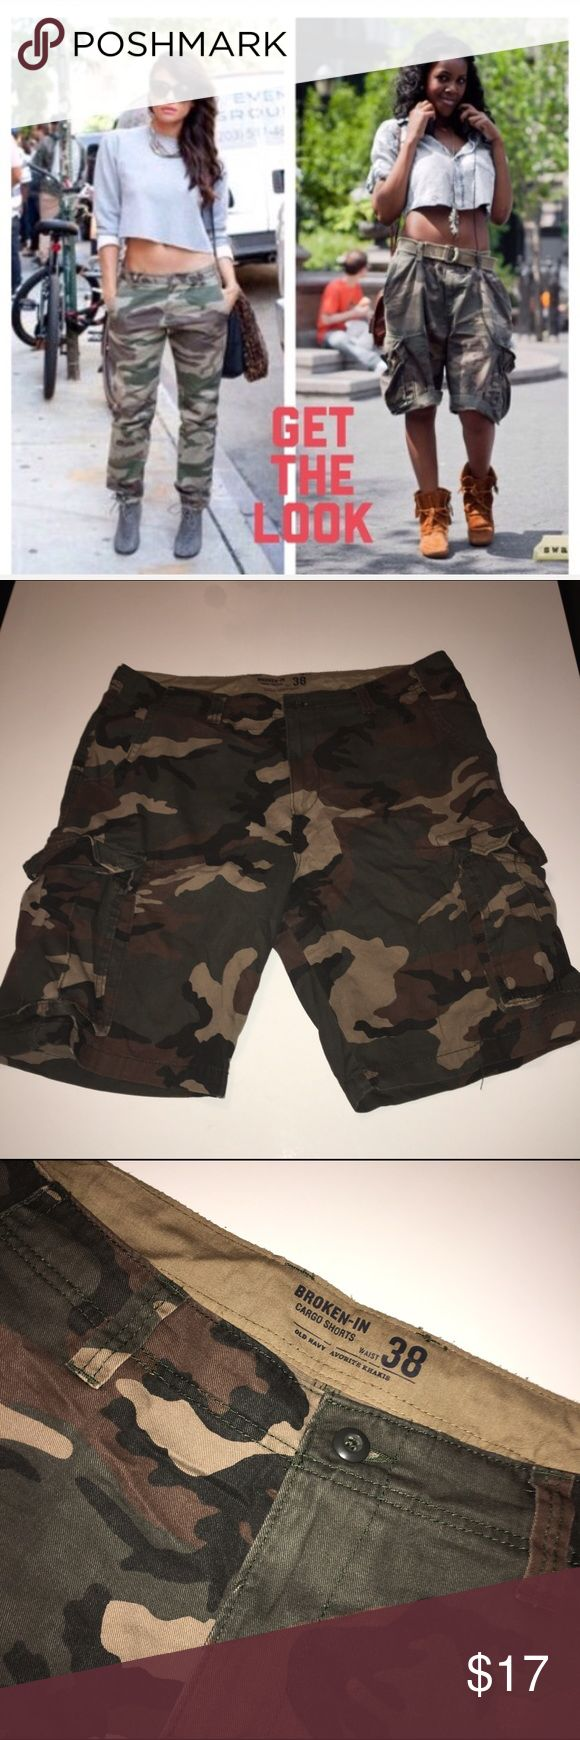 Old Navy Camouflage Shorts Love these for a relaxed look with sandals or a crop top and heels. Any questions please feel free. I also have the top if you're interested. Old Navy Shorts Cargo